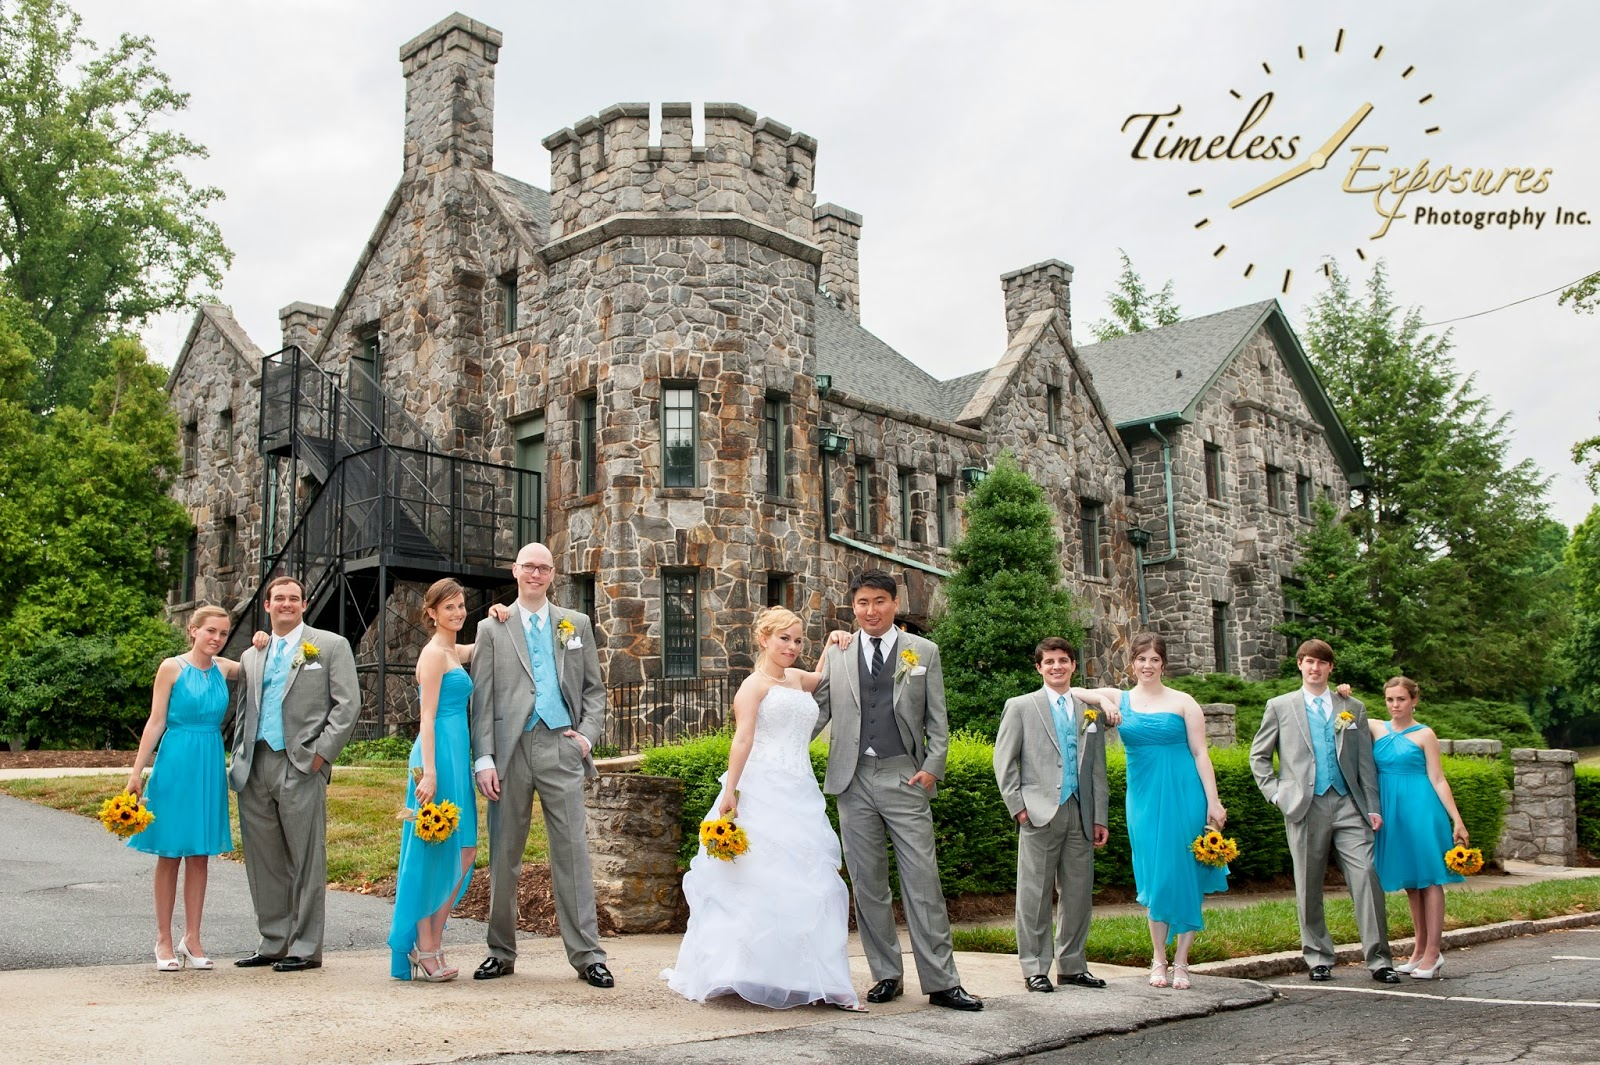 Wedding Photography Asheville Nc: Timeless Exposures Photography, Inc.: Mandy + Shawn